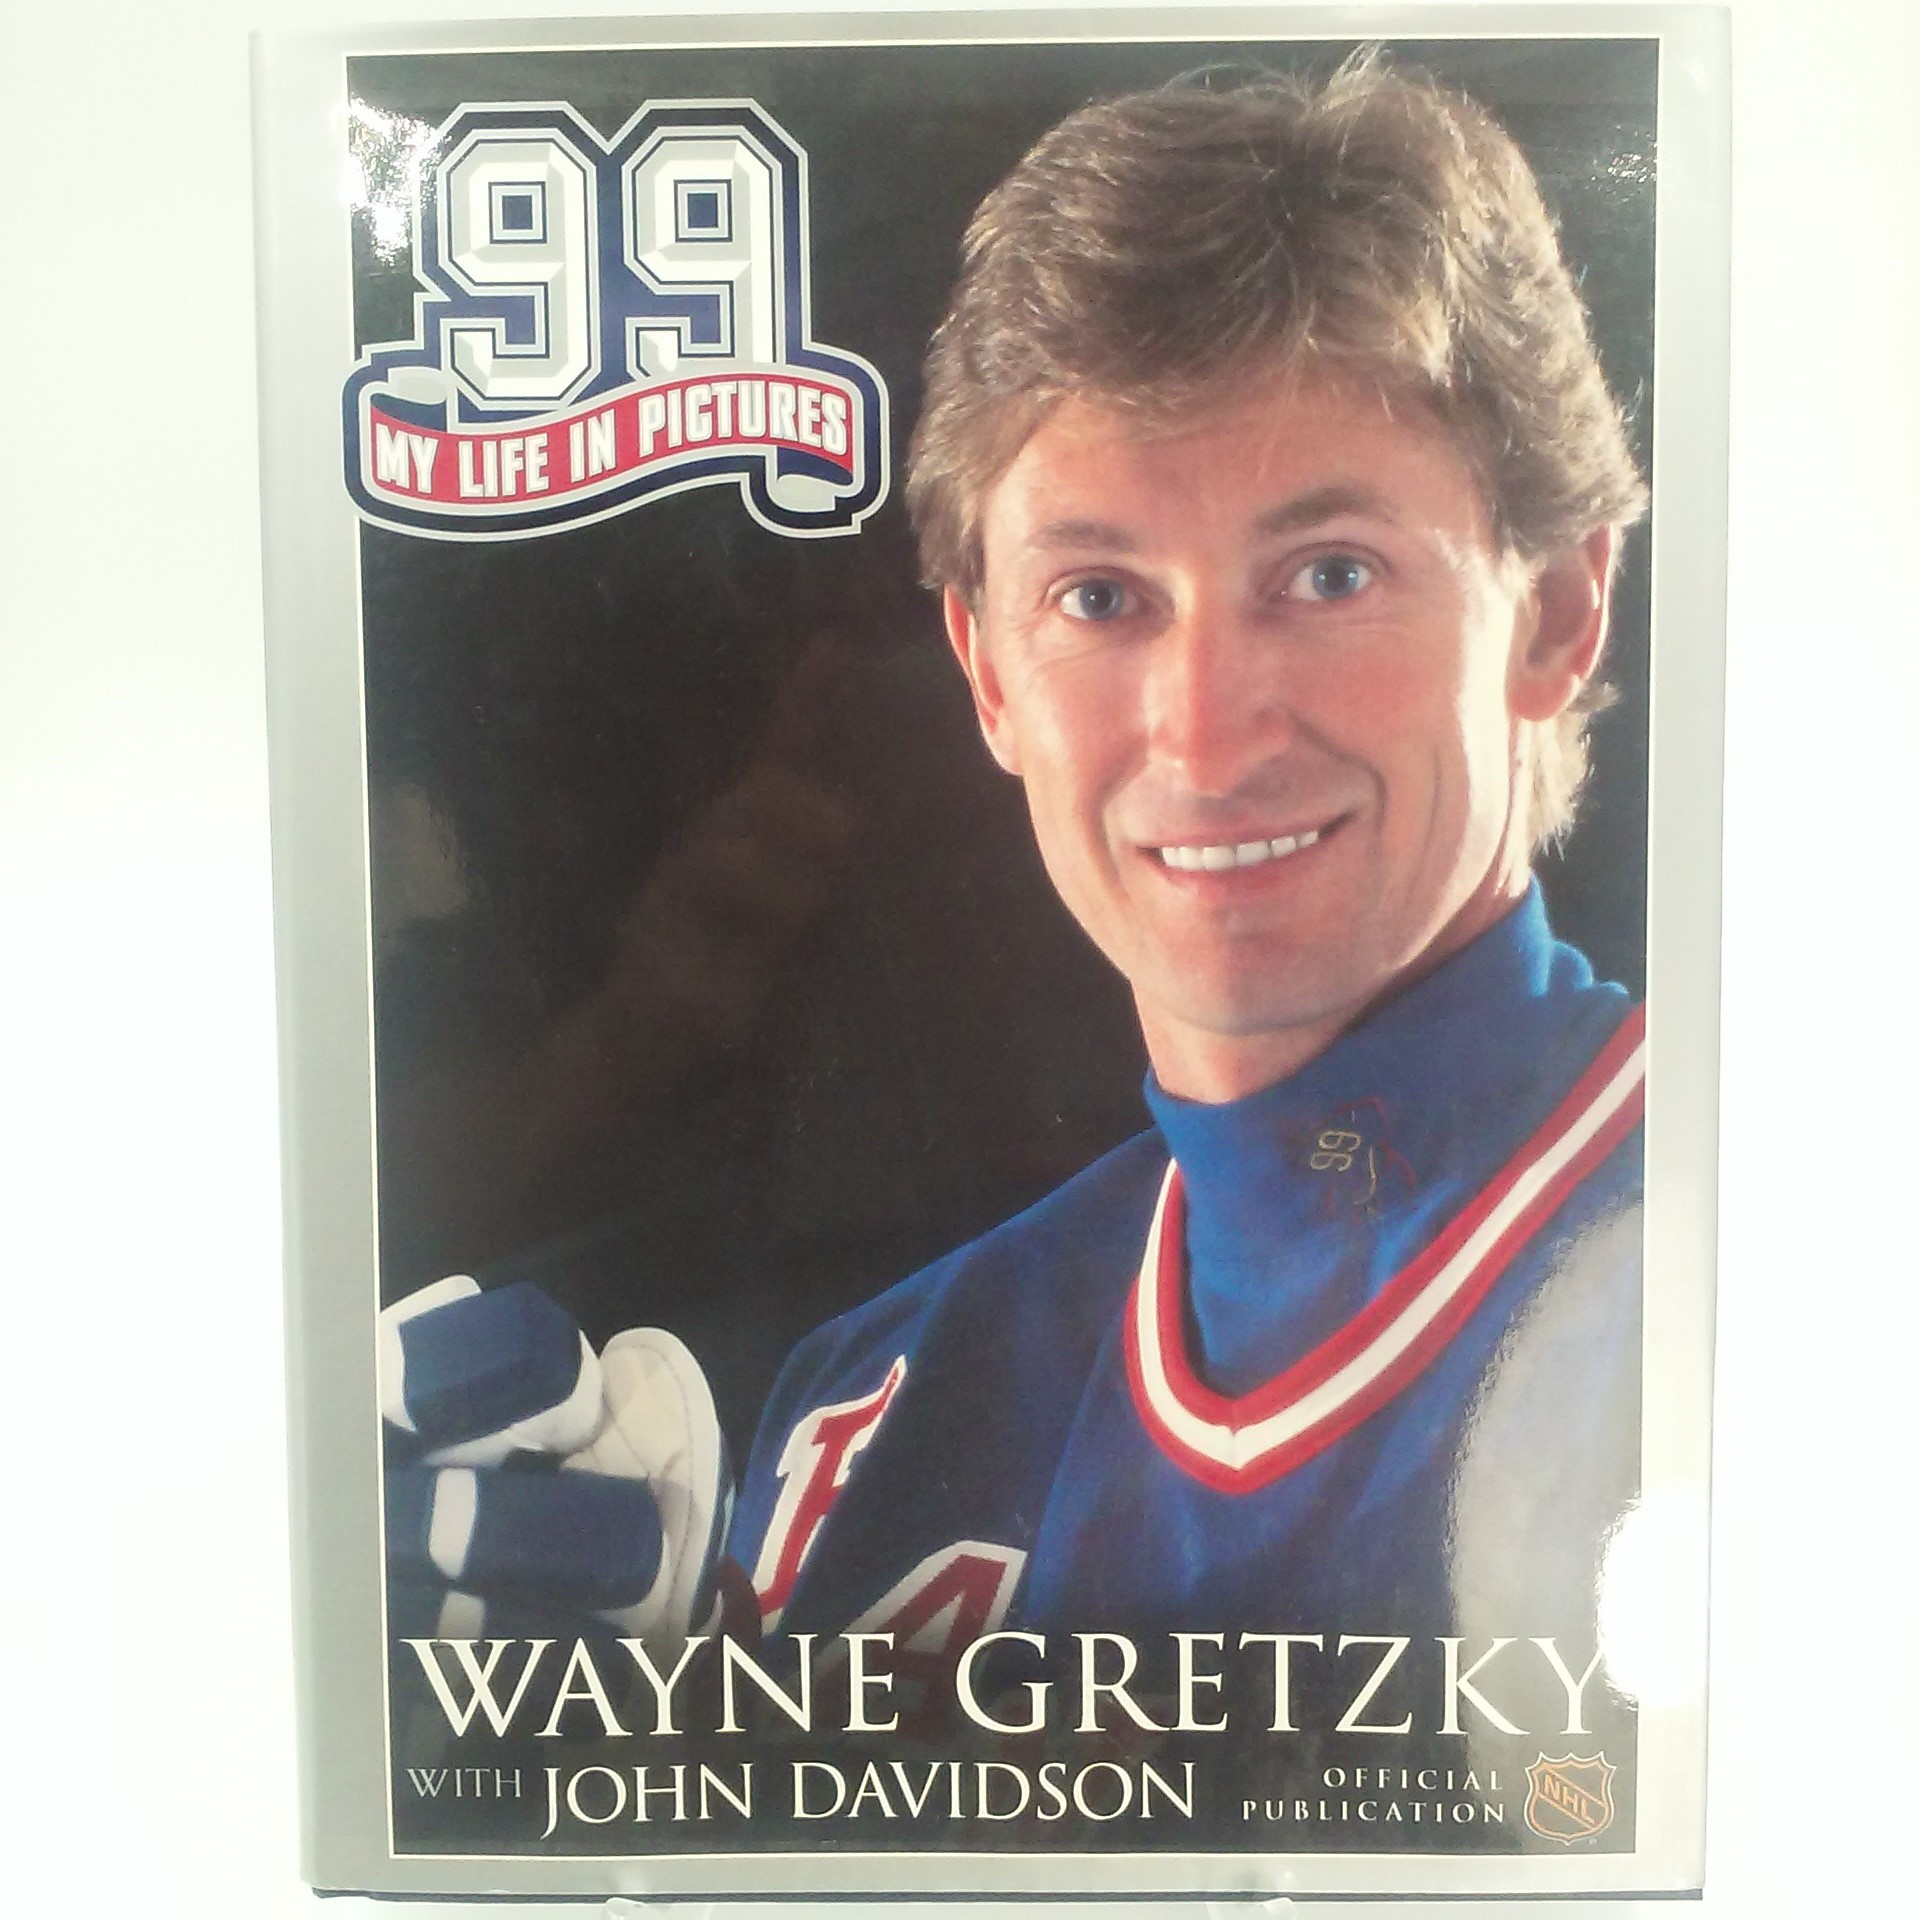 Book, 99 - Wayne Gretzky My Life in Pictures